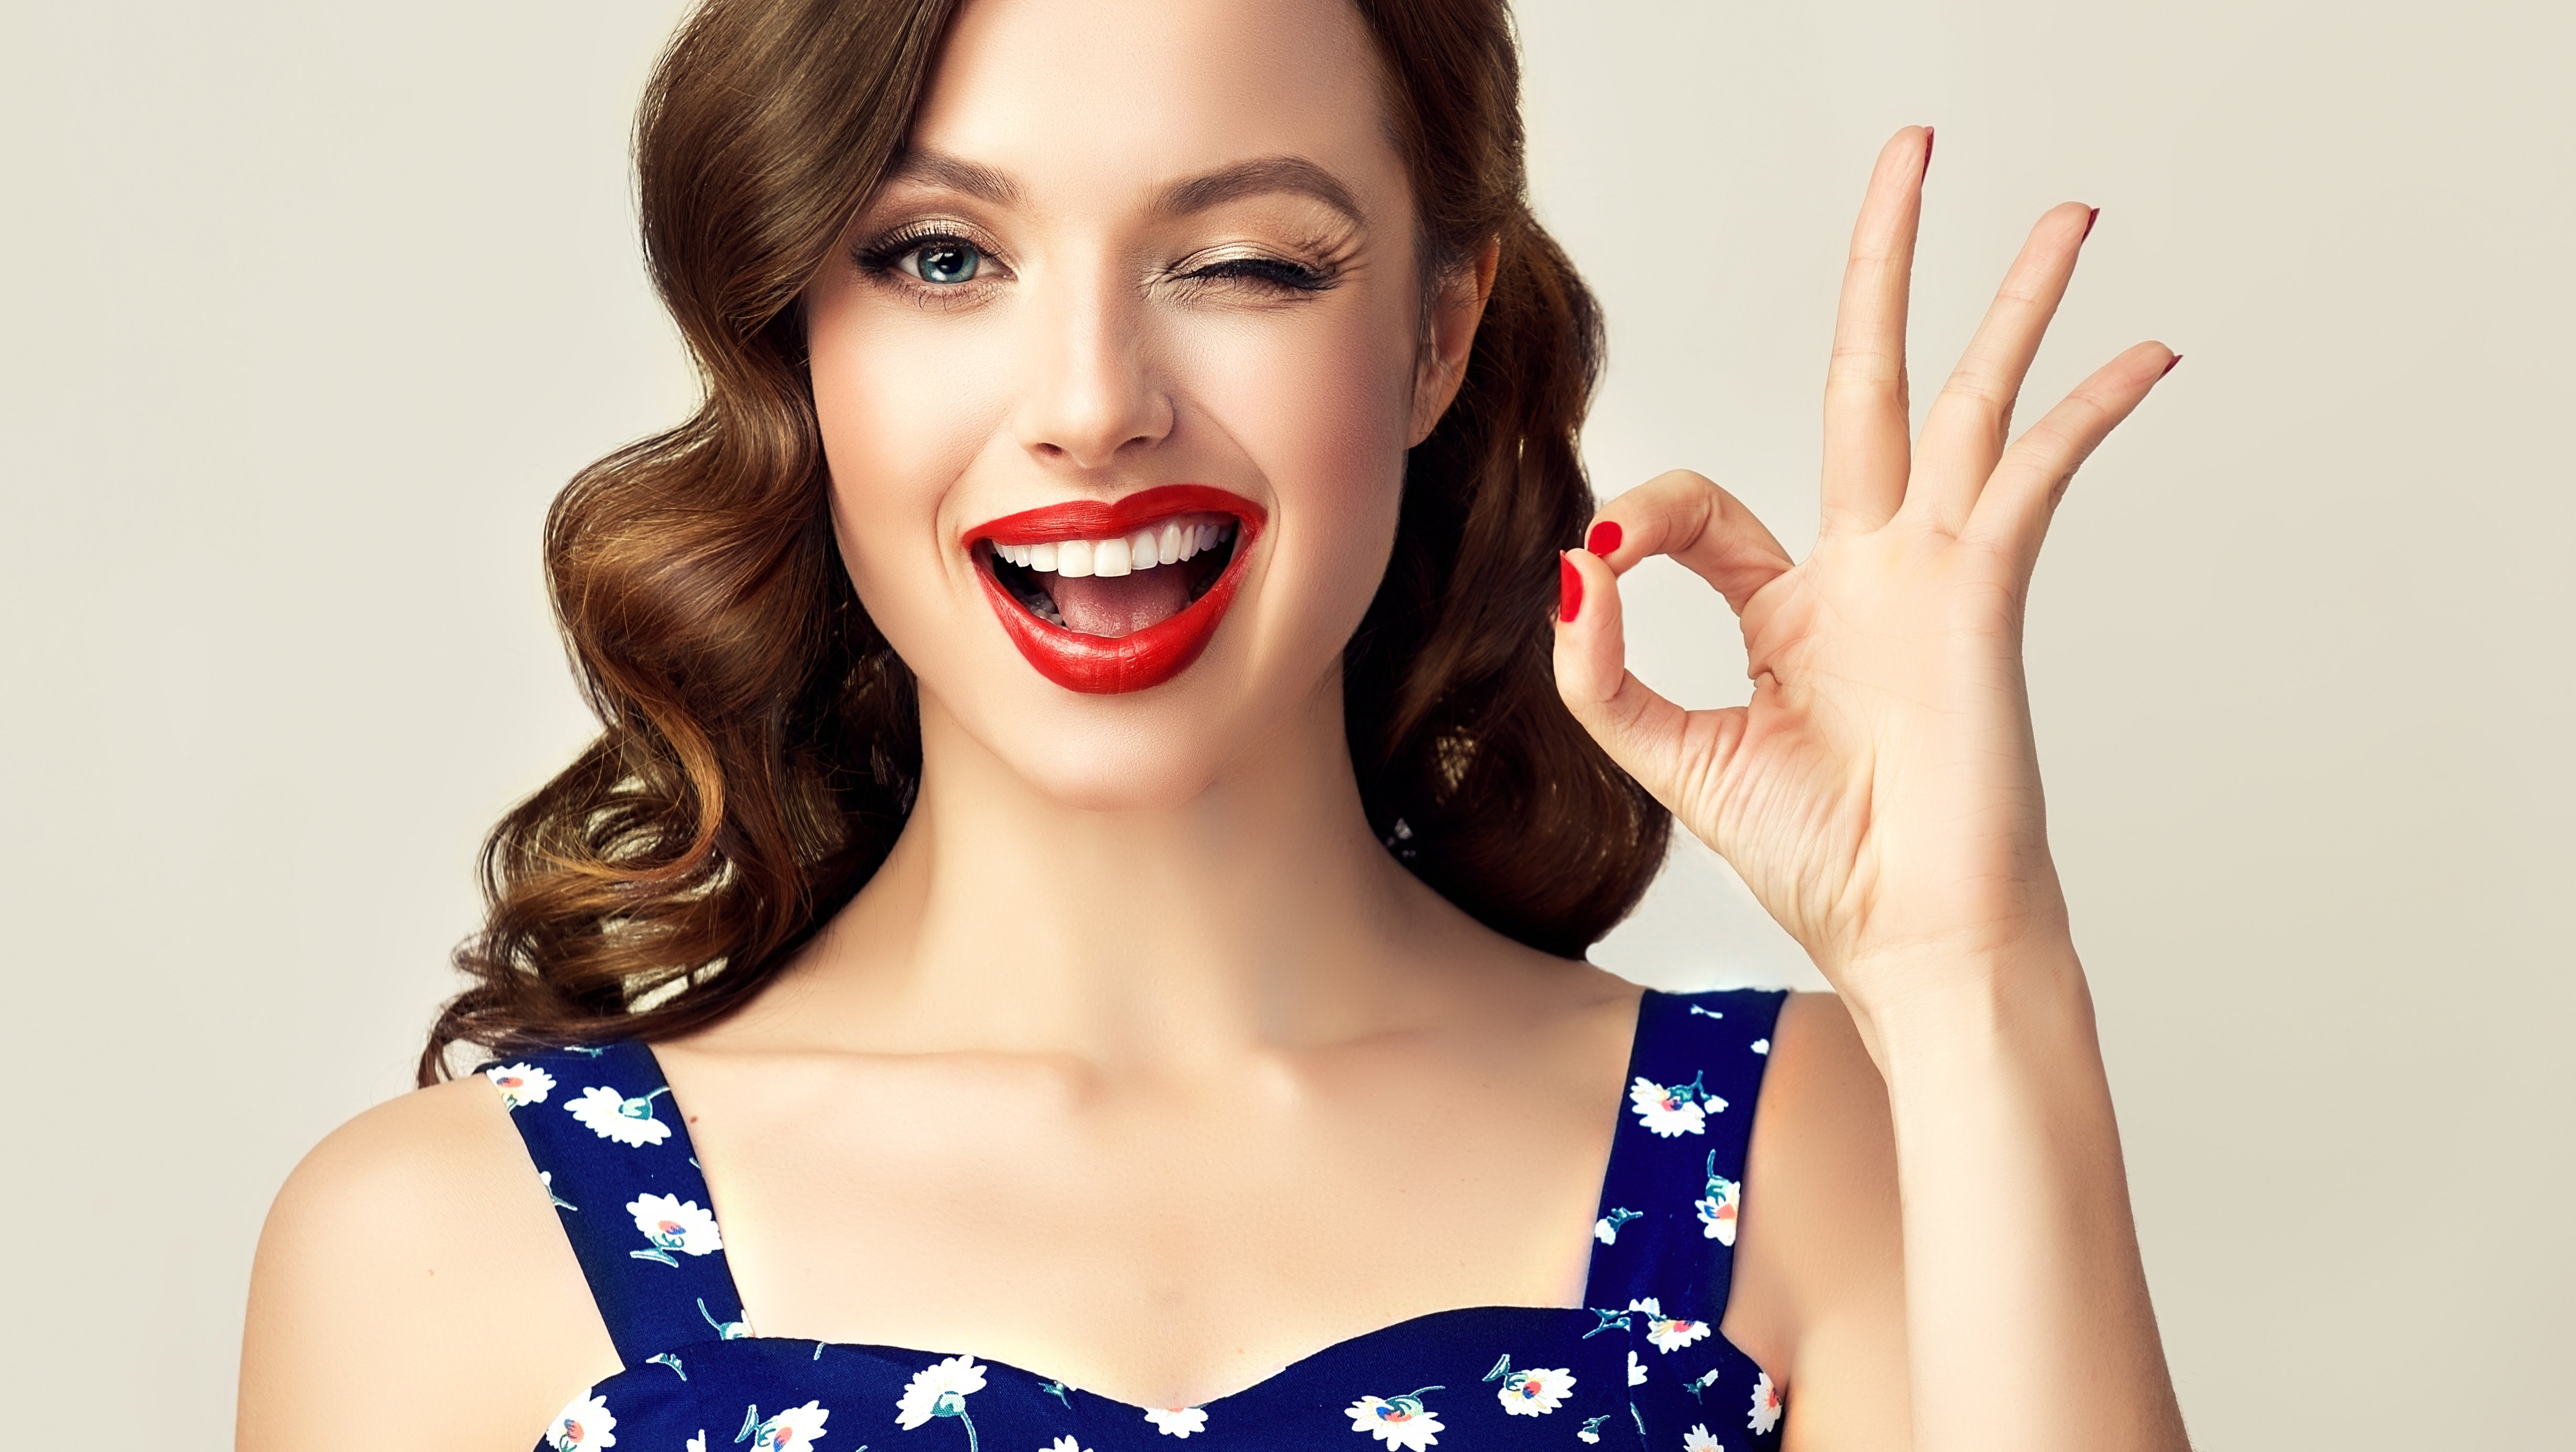 Dental veneers are popular, but they can go wrong. Get yours right!